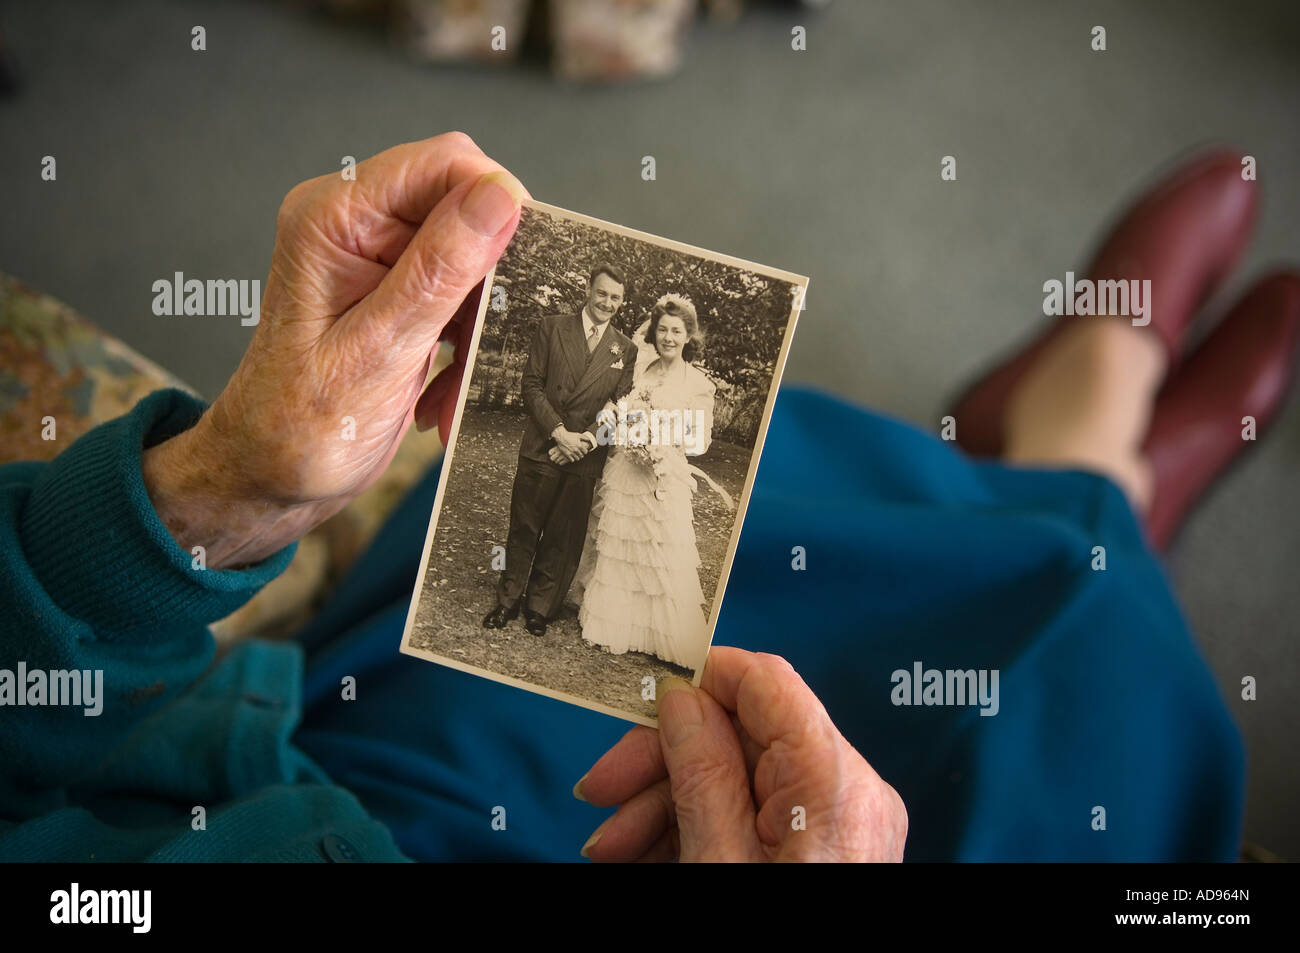 Elderly widow looks at photograph of herself and husband on their wedding day - Stock Image